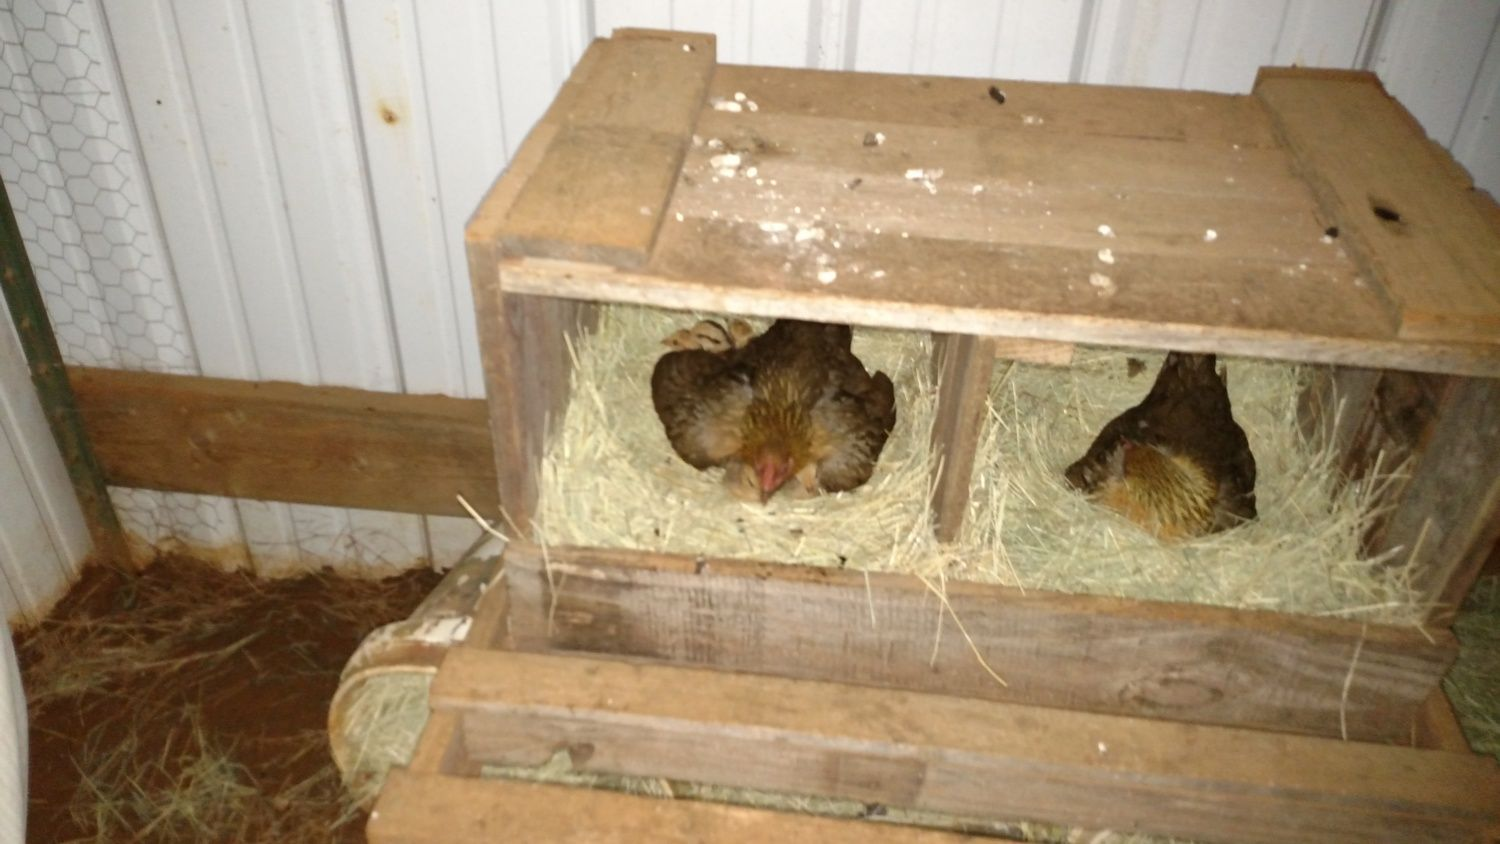 Momma hen in left with 7 babies. Hen on right has been sitting since March 8th. She is on 6 eggs total. 4 are too old to hatch I think, we'll see. These are first time hens. Momma with babies has set a good example.